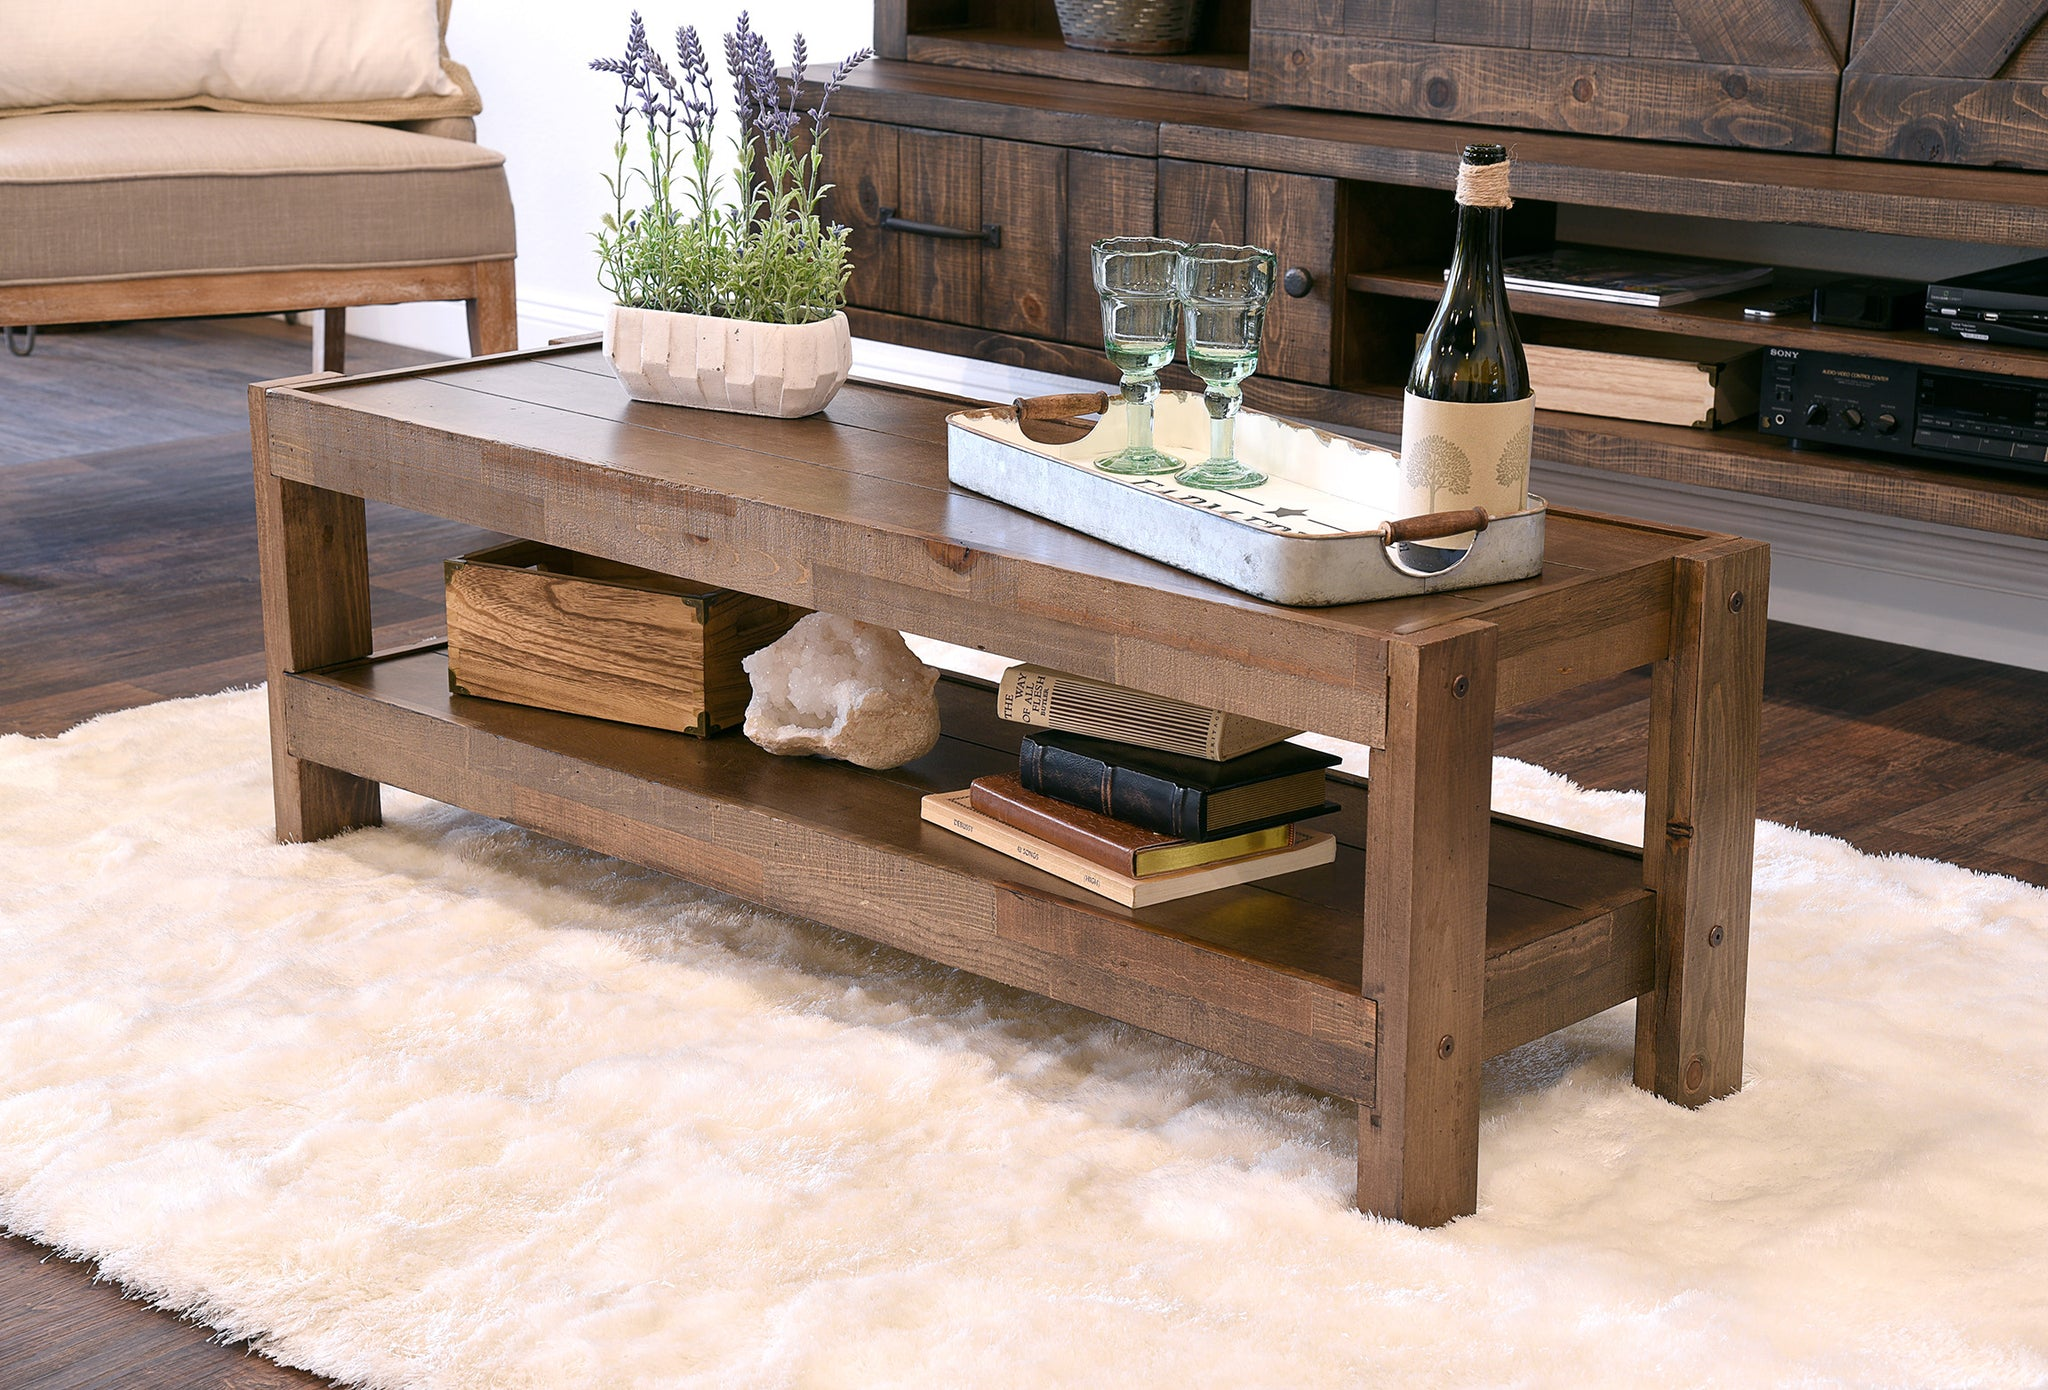 Rustic Reclaimed Farmhouse Pallet Wood Style Coffee Table   PresEARTH Spice